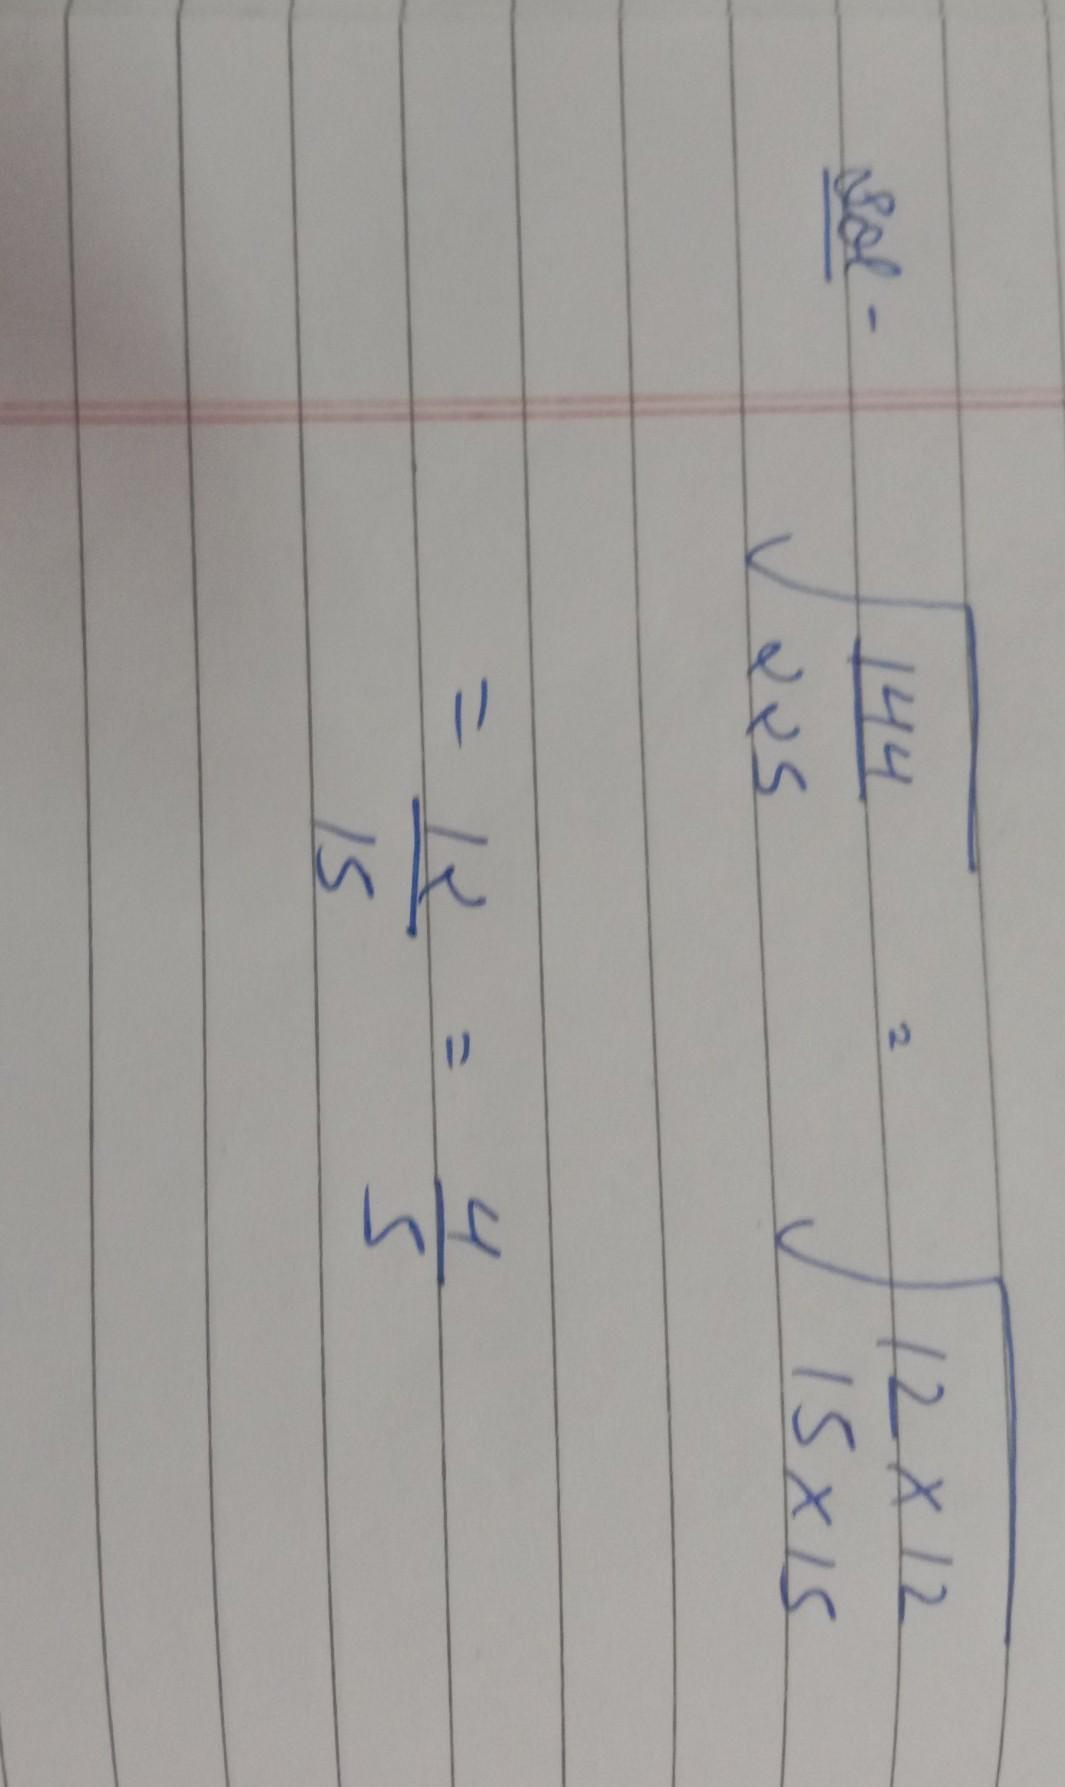 Find The Square Root Of The Following Fraction 144 By 225 Brainly In The way i like to explain this is that you need to find. find the square root of the following